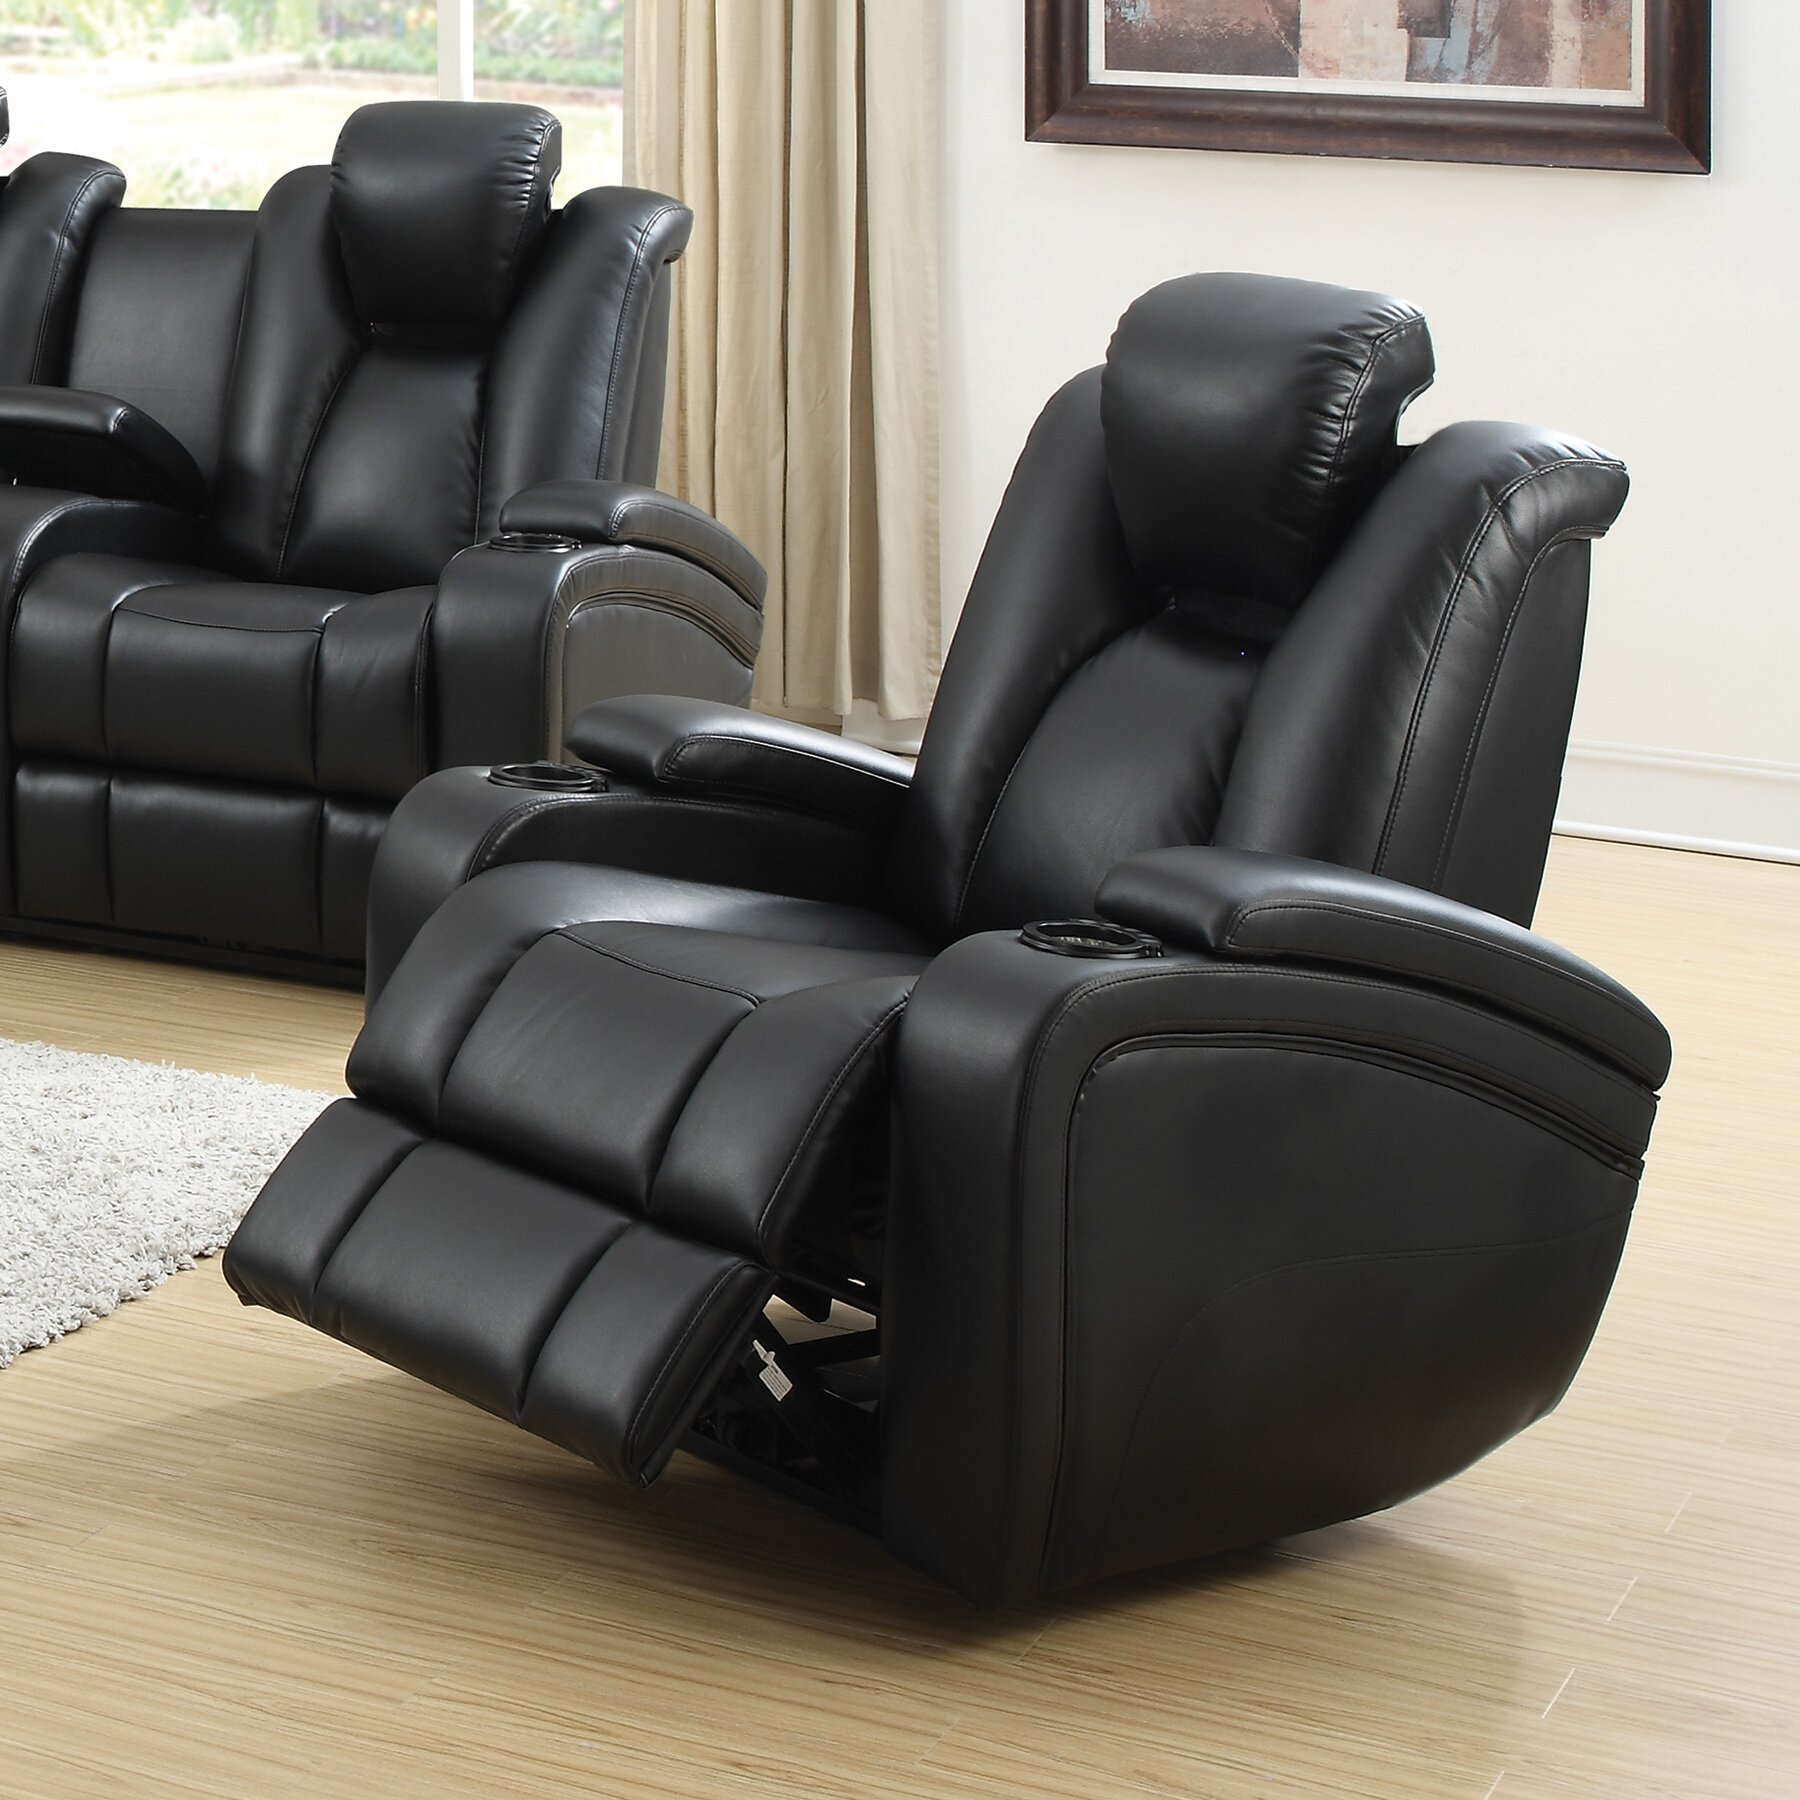 Wildon home delange motion power recliner reviews for Electric recliners reviews